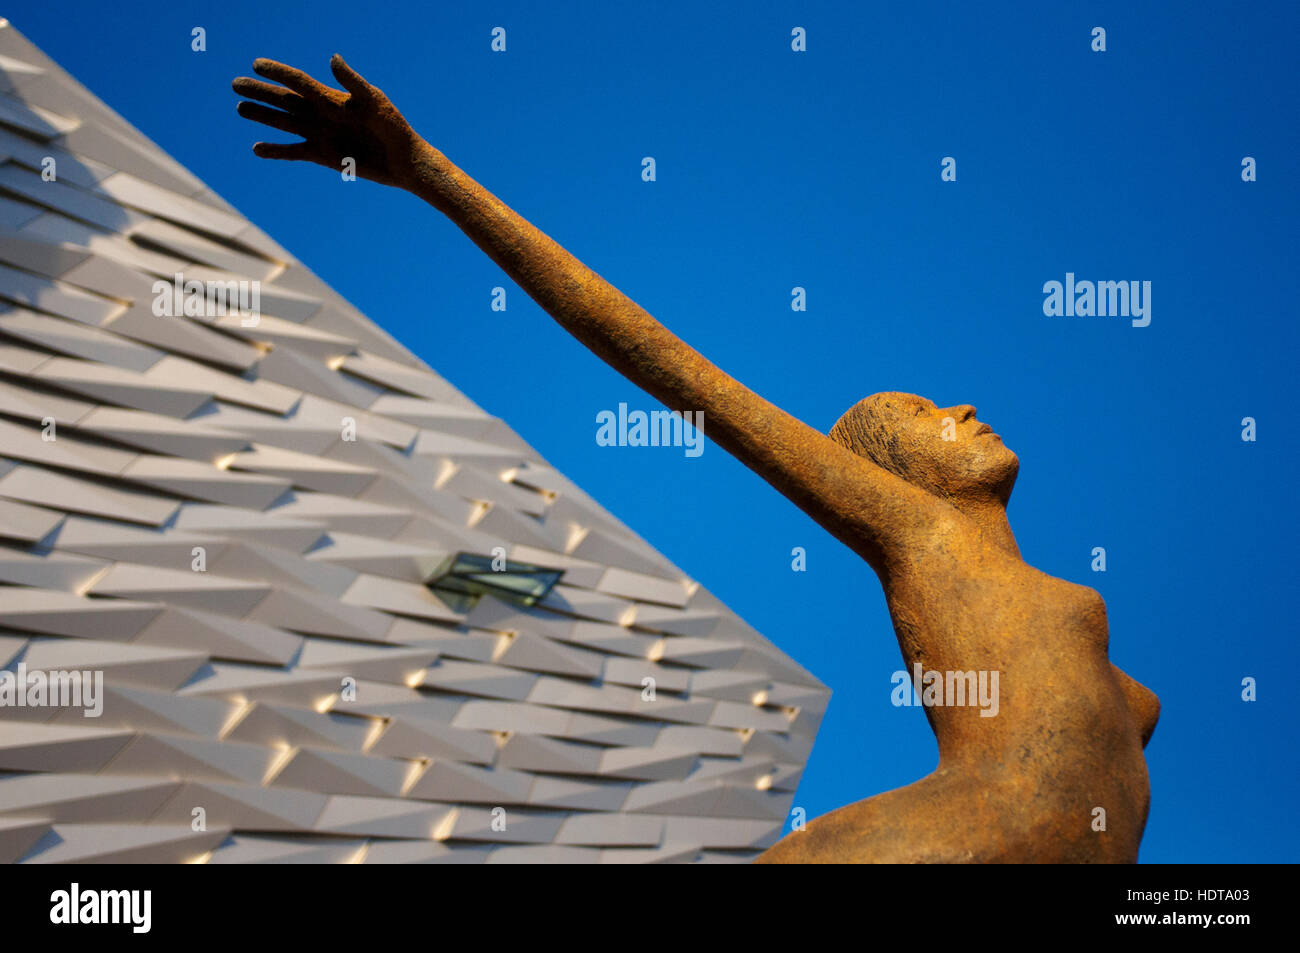 Rowan Gillespie's sculpture Titanica in front of the Titanic museum in Belfast, Northern Ireland United Kingdom - Stock Image